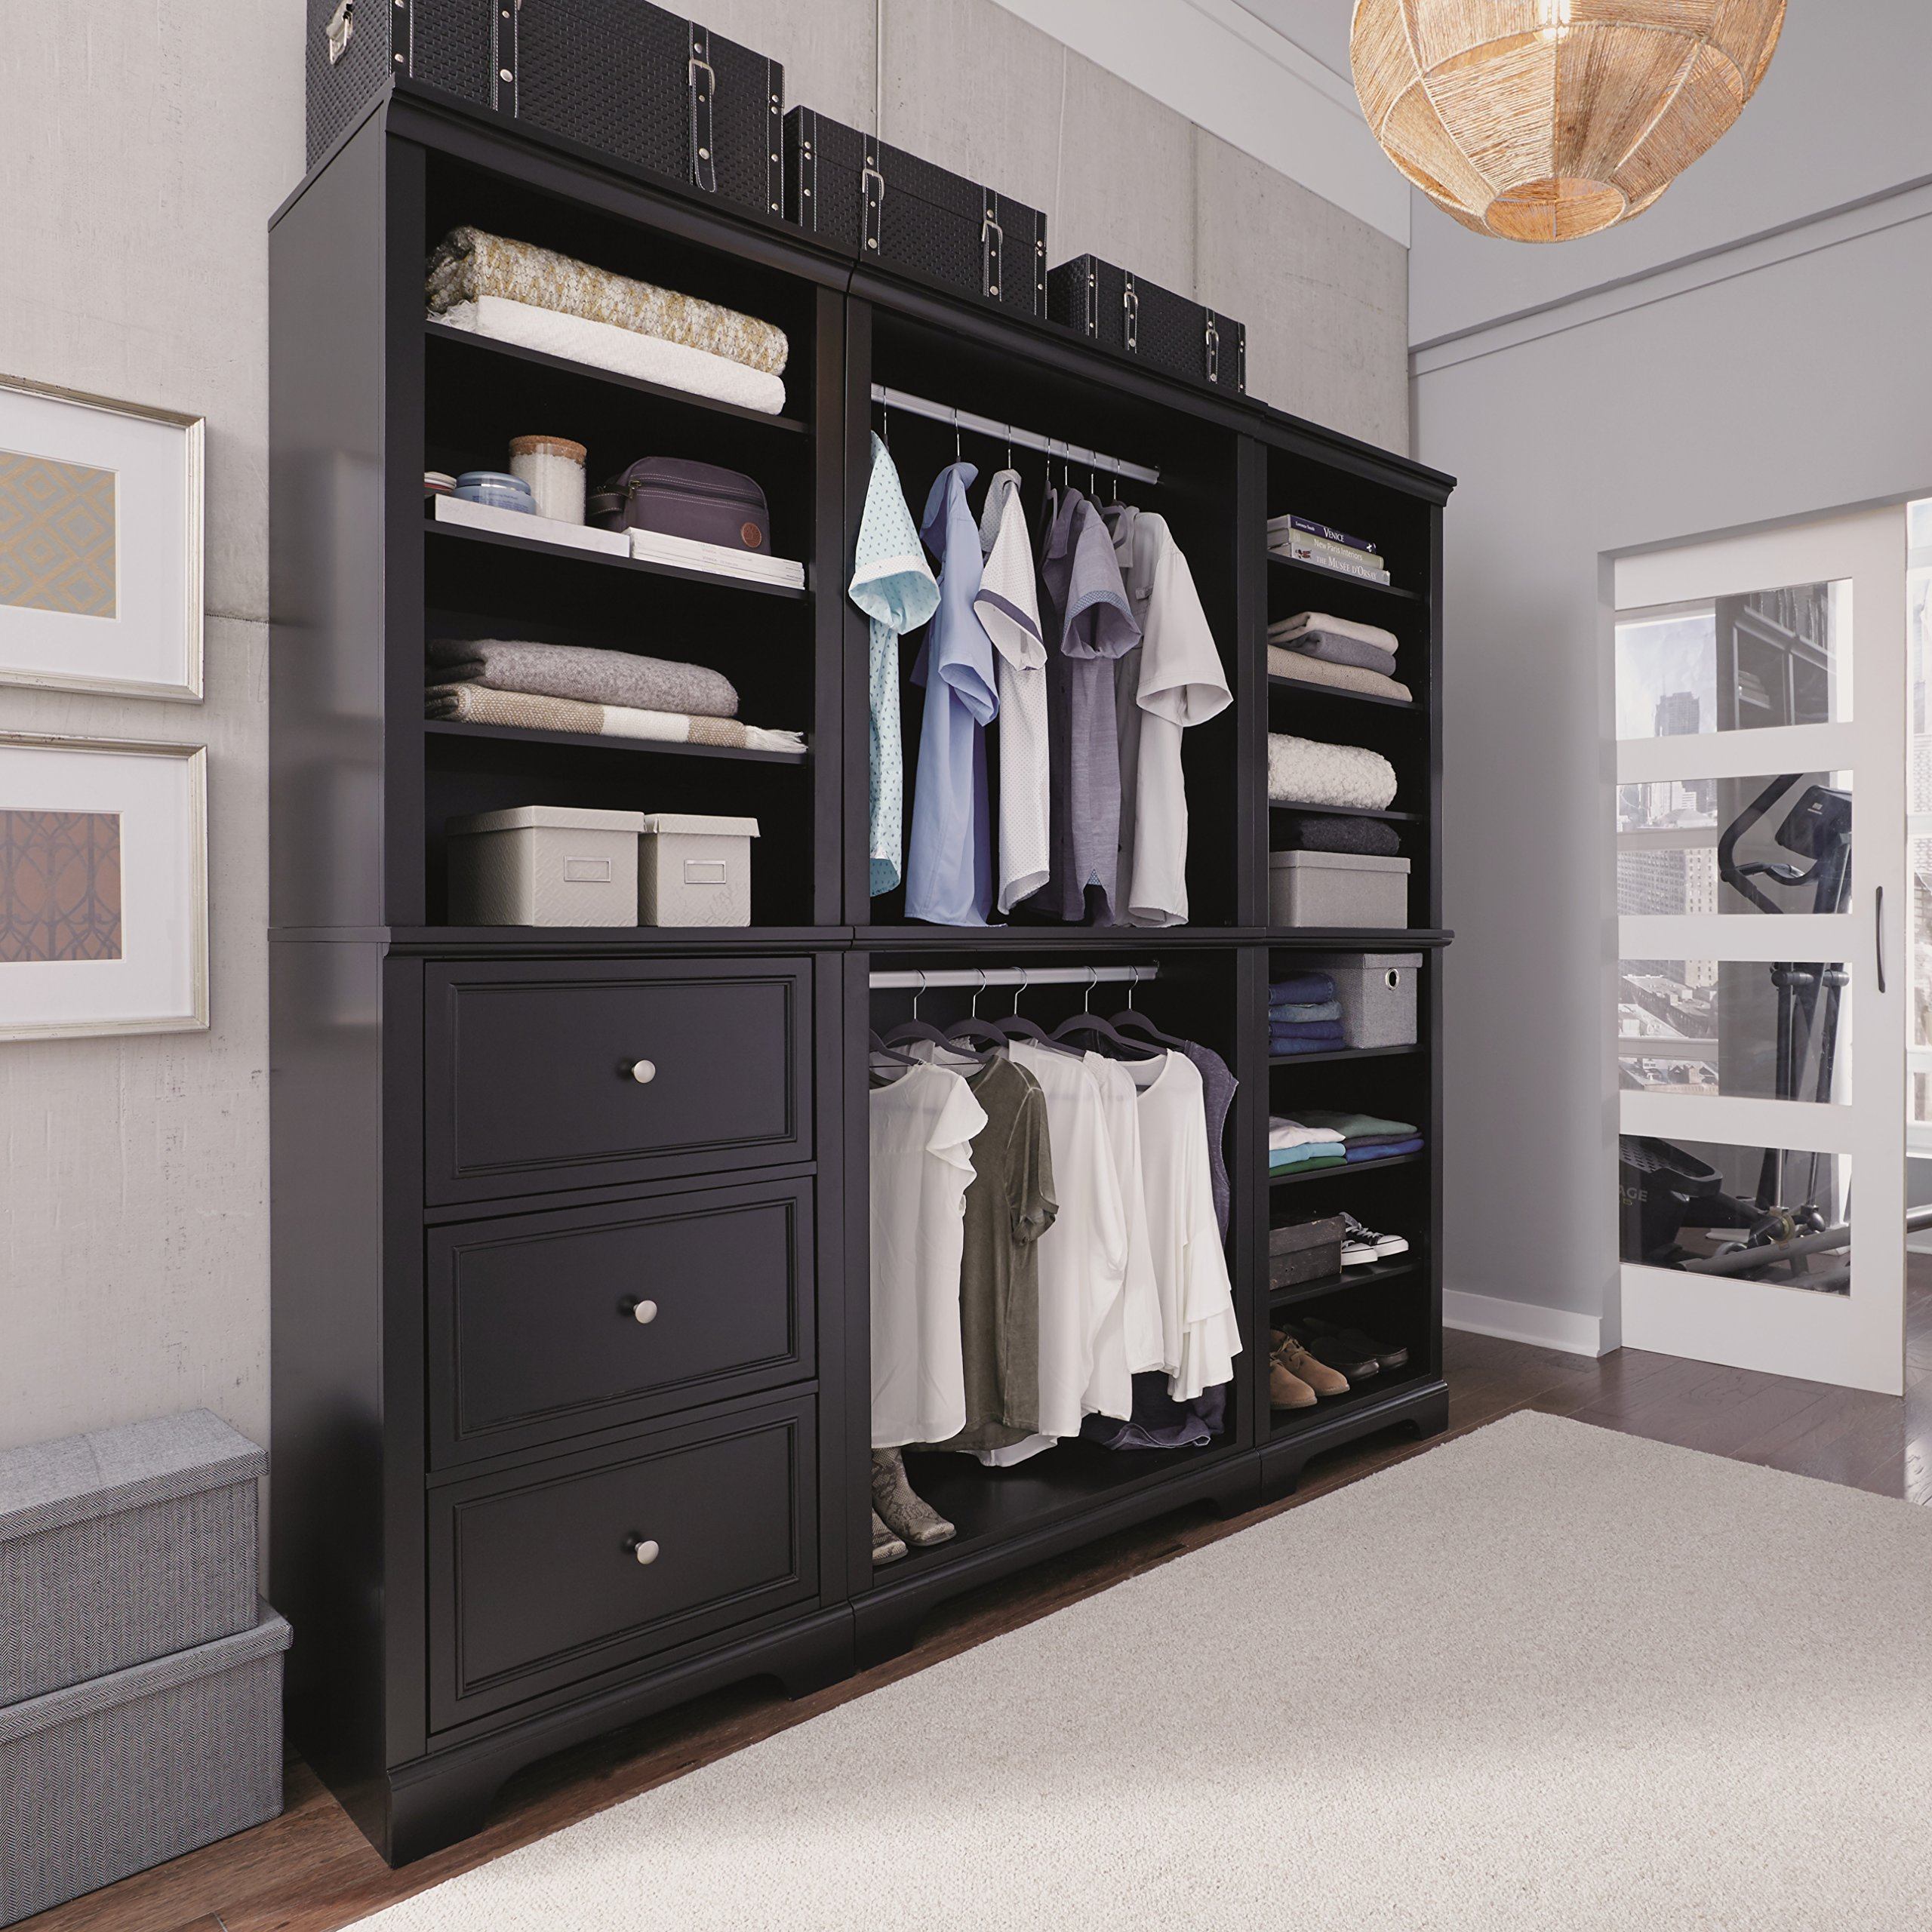 Bedford Black 3 Piece Closet/Storage System Organizer by Home Styles by Home Styles